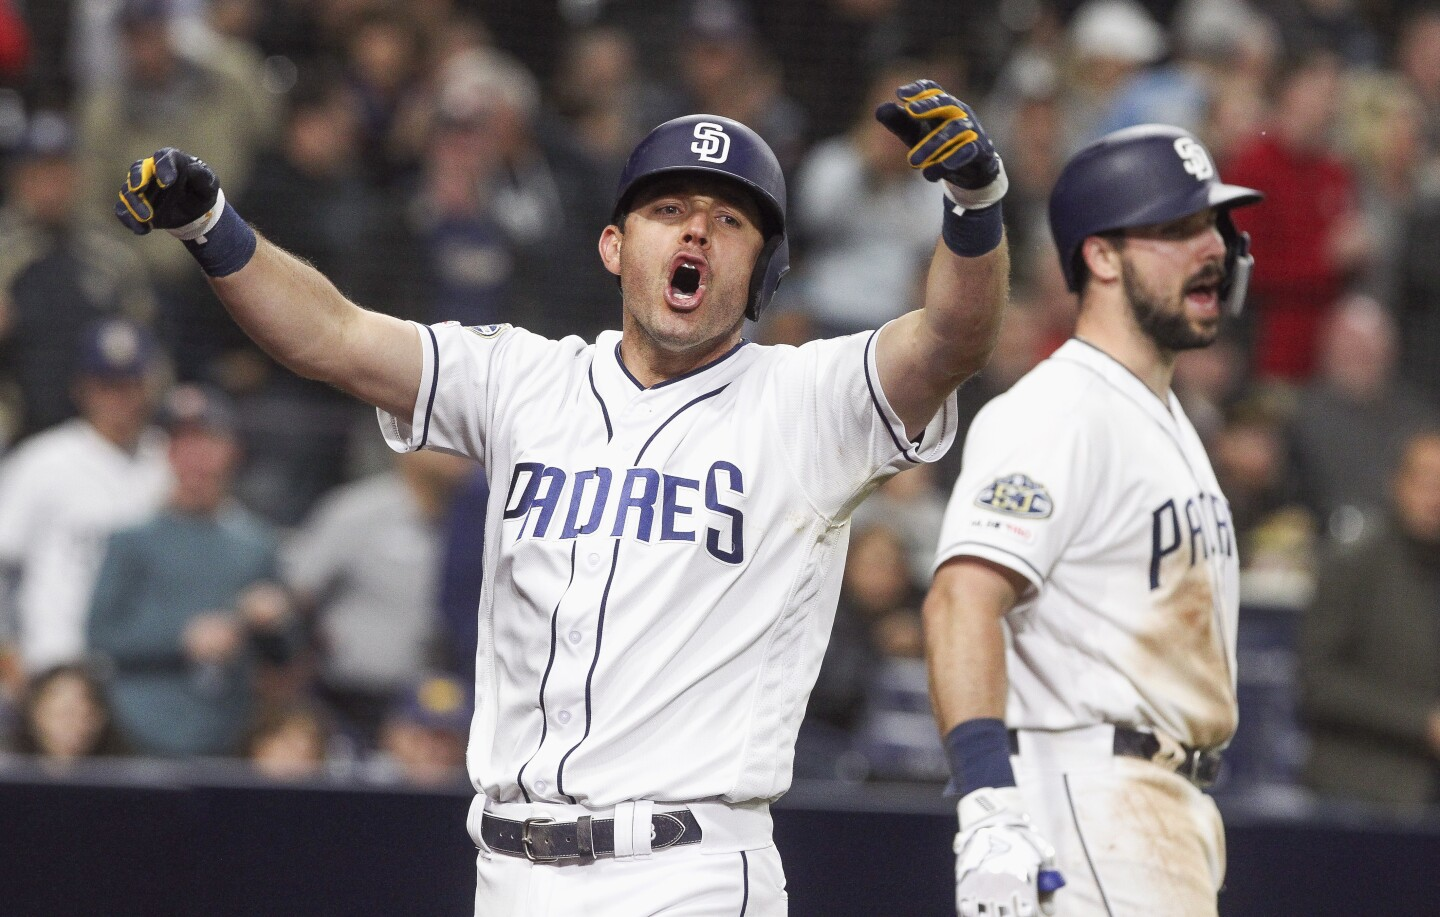 The Padres' Ian Kinsler lets out a yell as he celebrates his three-run home run in the sixth inning against the Pirates at Petco Park on Thursday, May 16, 2019 in San Diego, California.